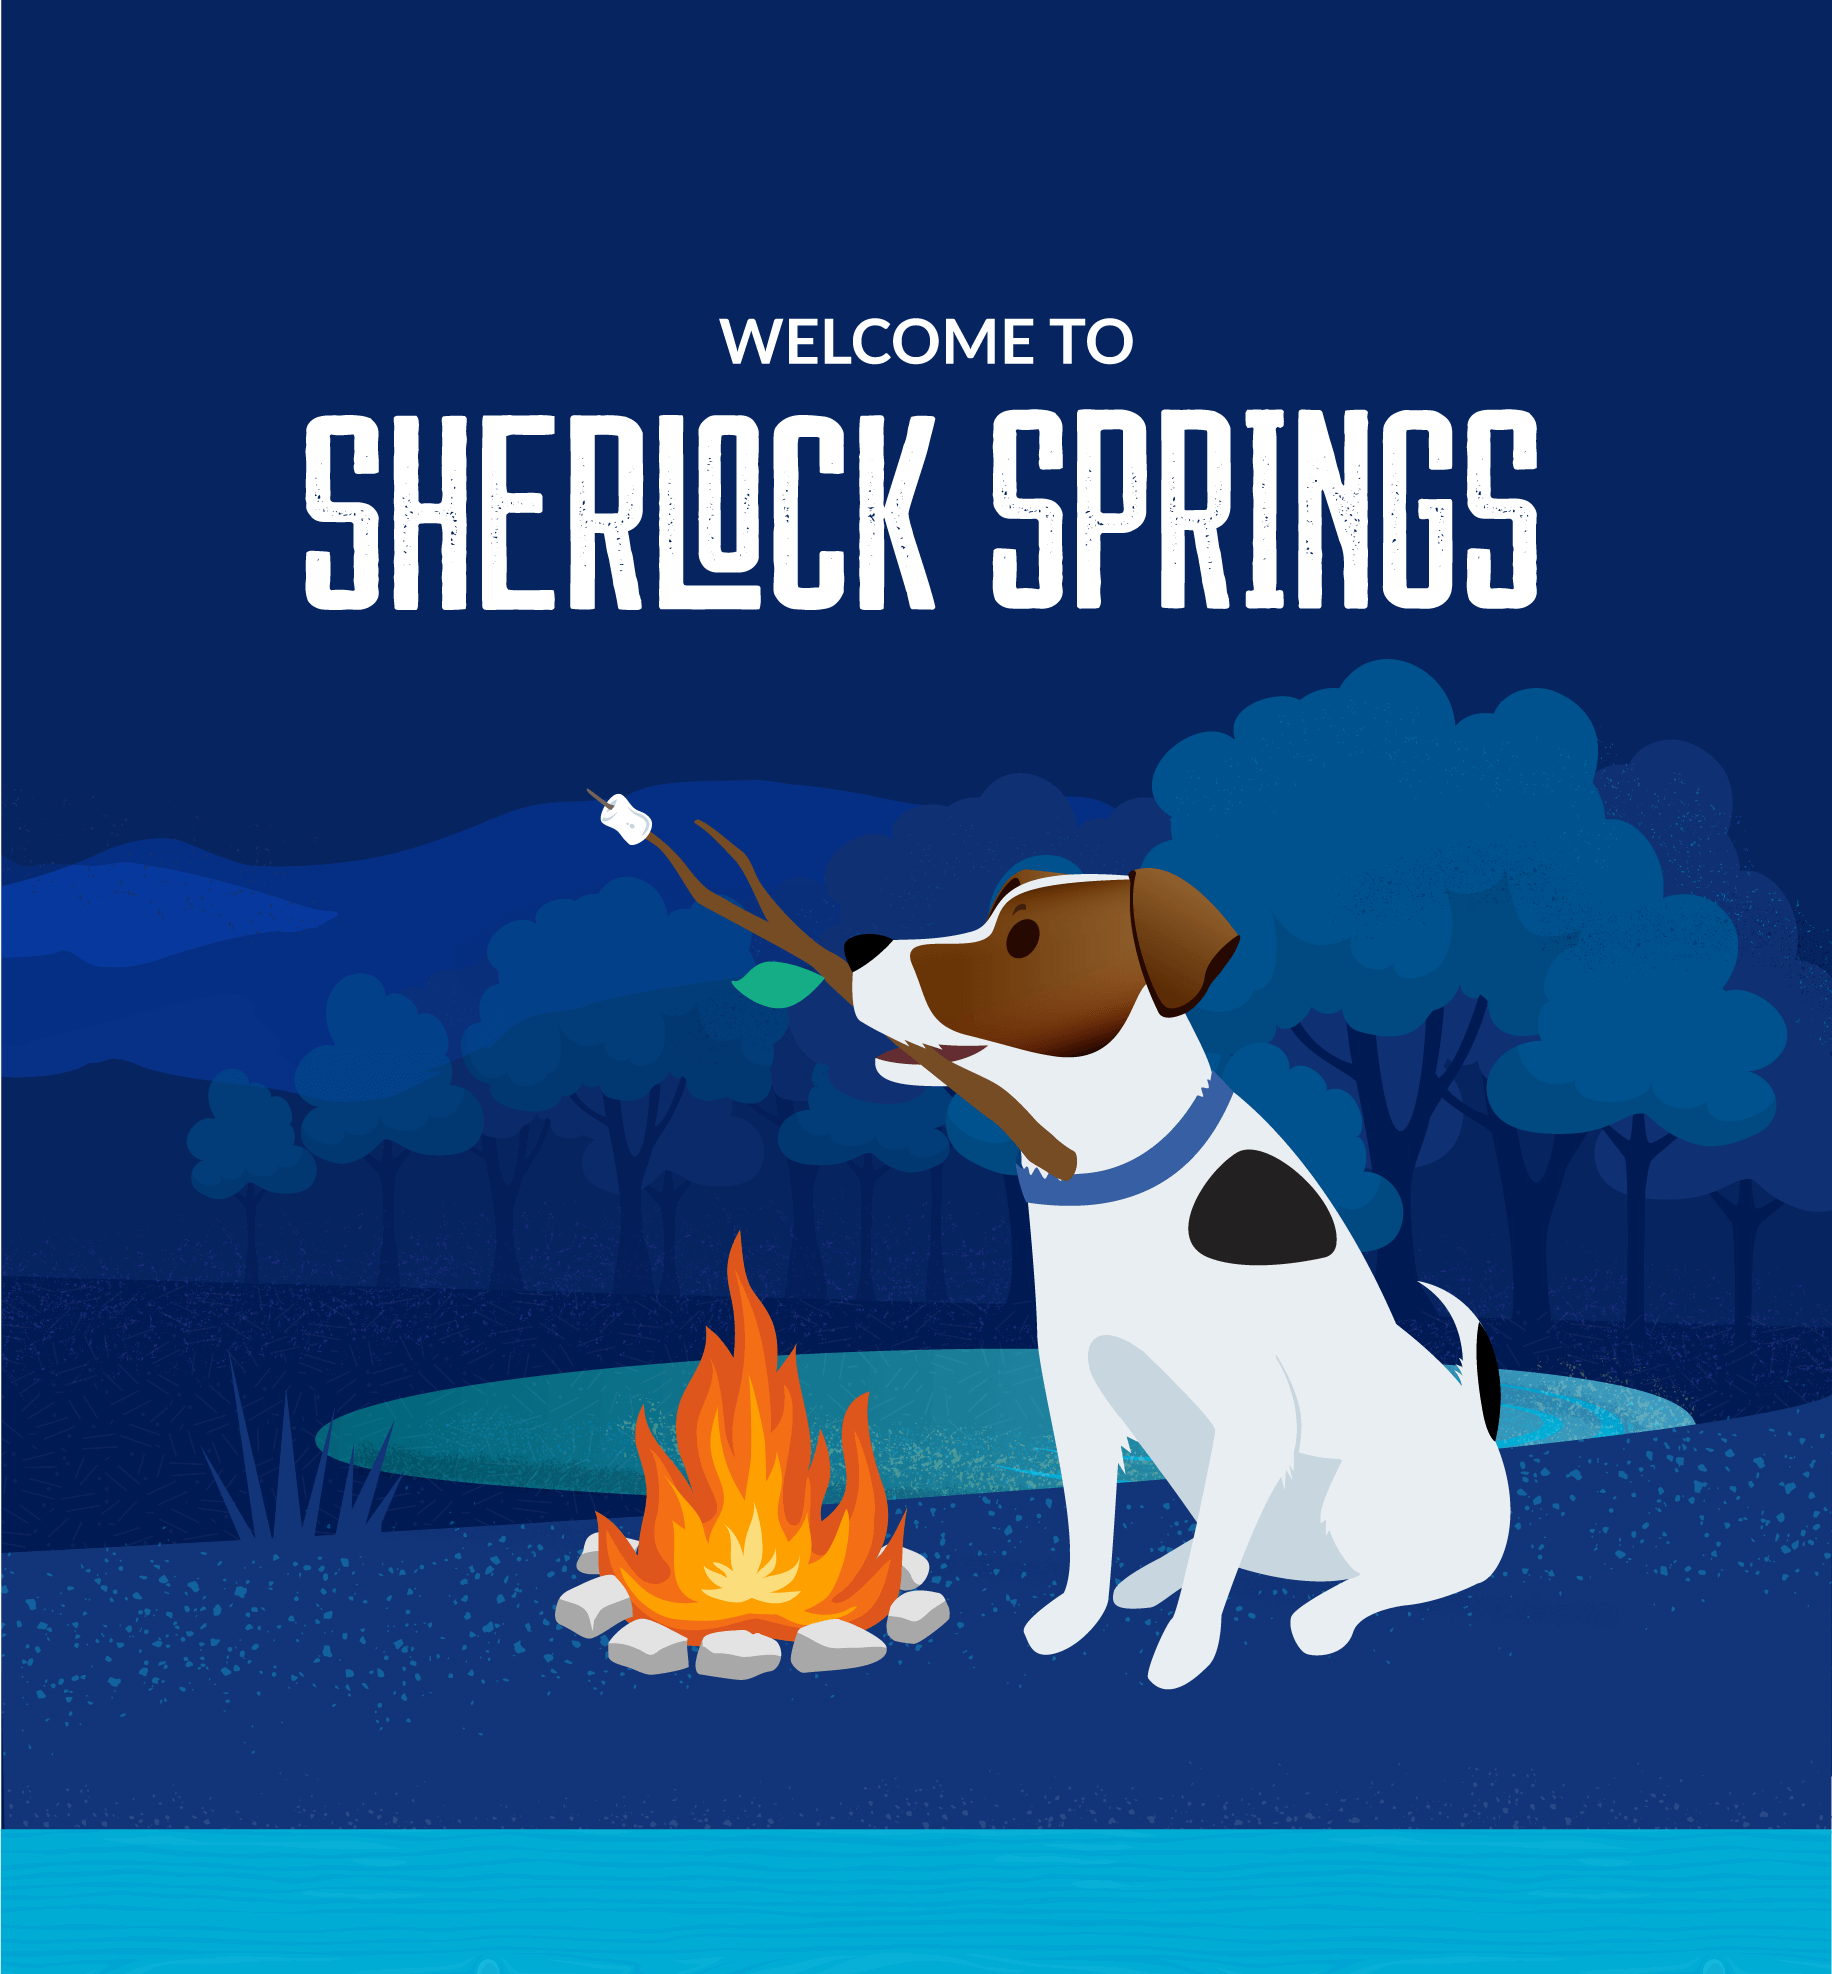 Sherlock Springs Home Page Header Image for Mobile